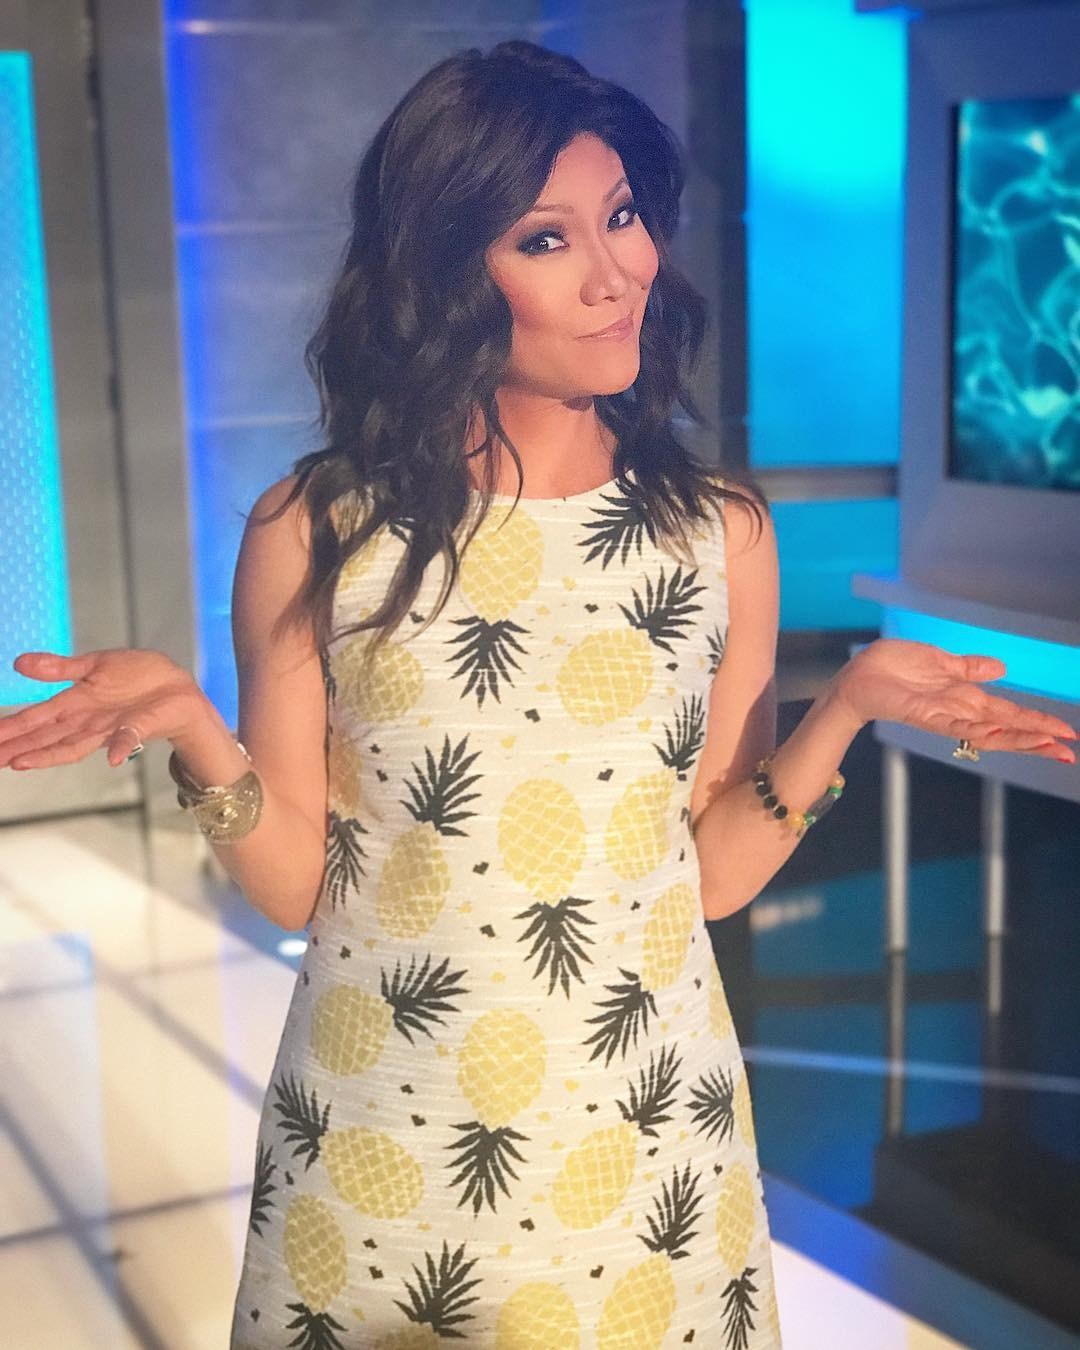 Julie Chen is looking gorgeous in her pineapple printed skirt. She is on the set of Big Brother.